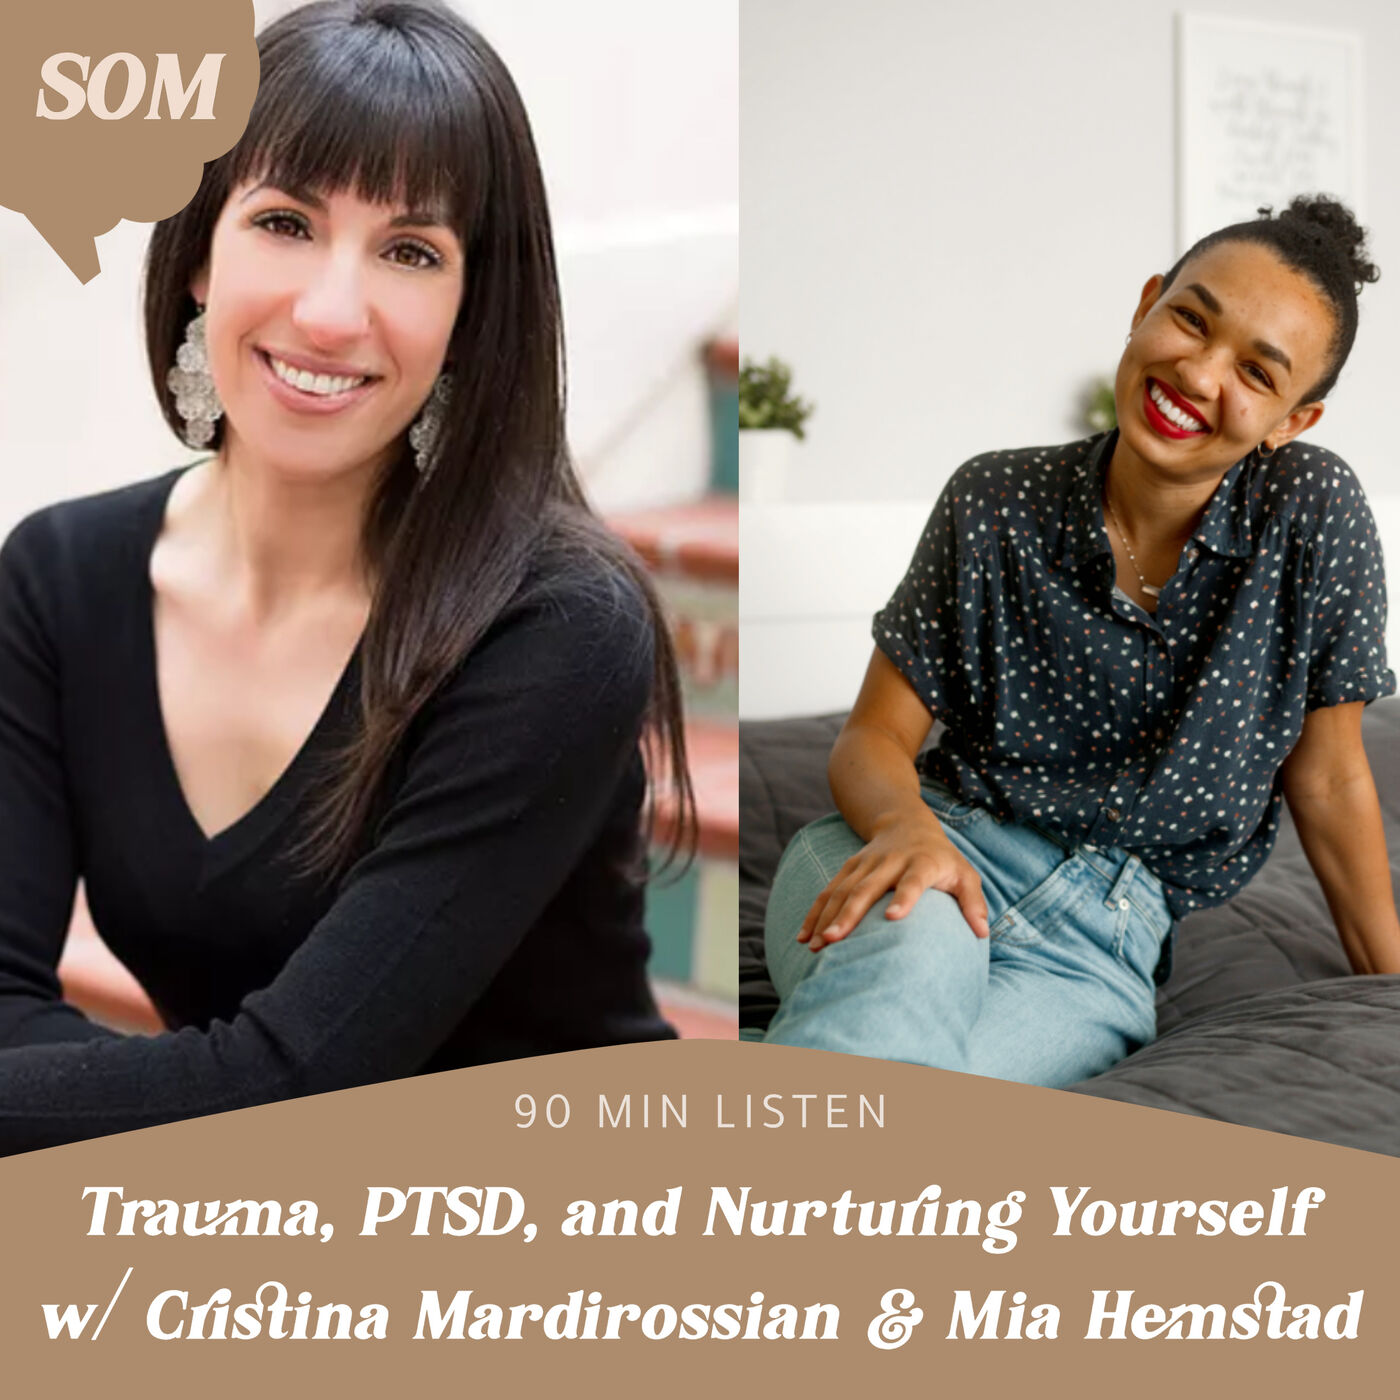 Trauma, PTSD, and Nurturing Yourself w/ Cristina Mardirossian & Mia Hemstad